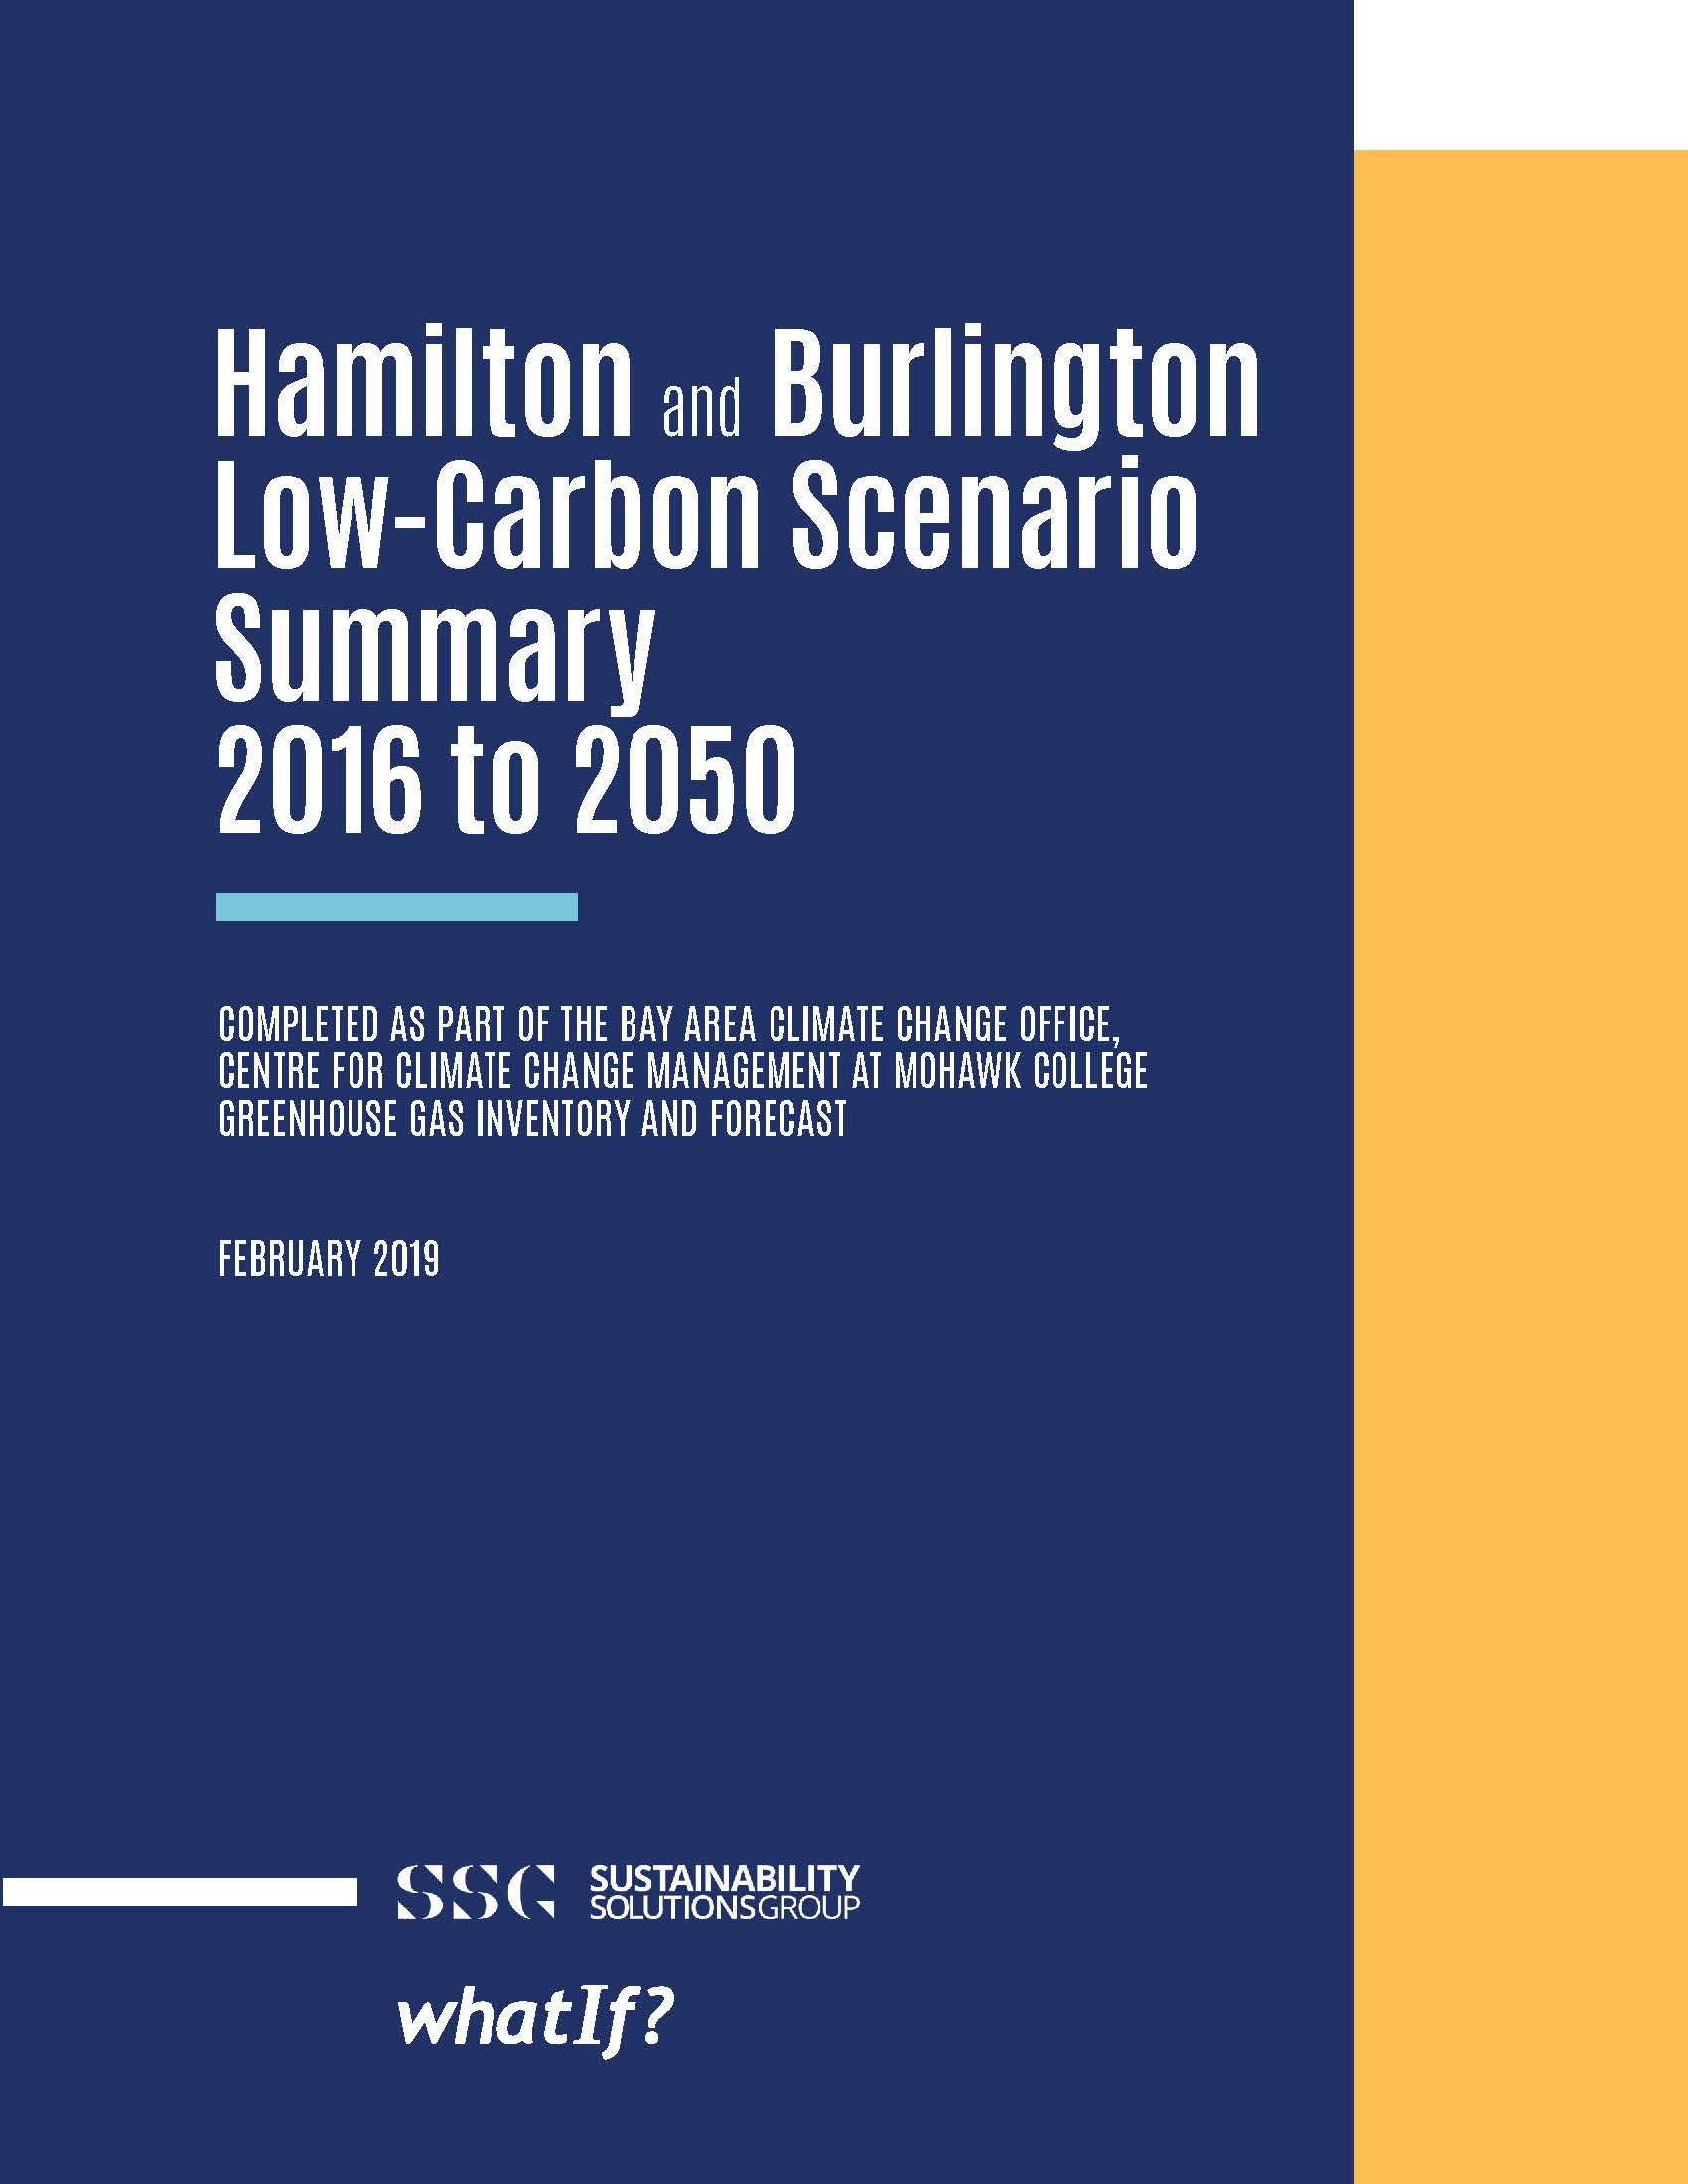 Hamilton-Burlington Summary Report Cover.jpg